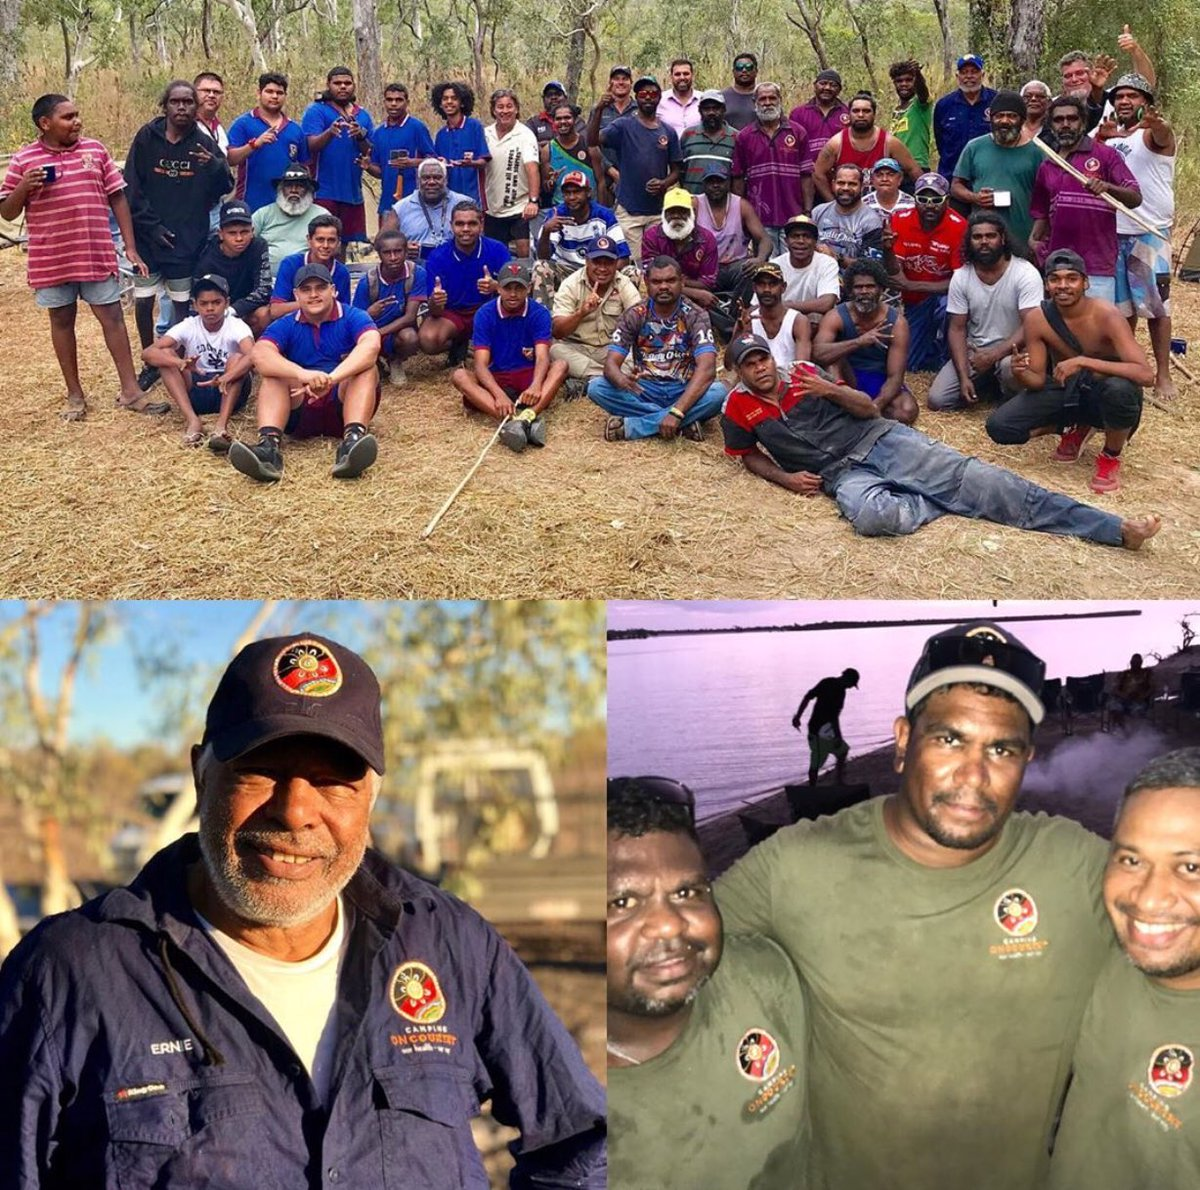 Looking forward to hosting BushTV and Ernie Dingo when the camping on country team come to Wadeye. #campingoncountry #ourhealthourway #cultureiskey  #ThamarrurrDC #IndigenousX